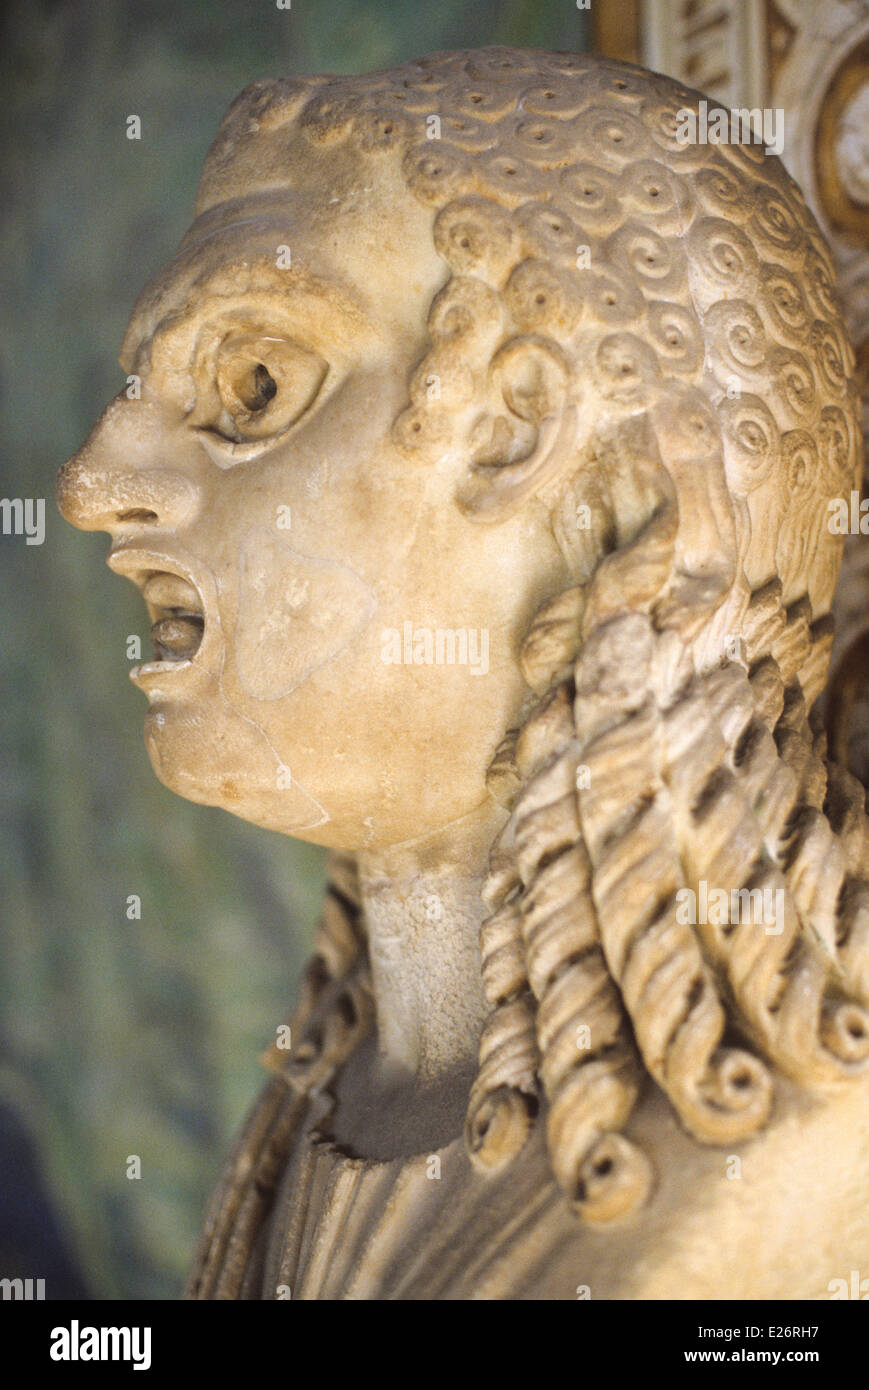 Roman history,mask depicting the tragedy,the Vatican Museums,Rome - Stock Image